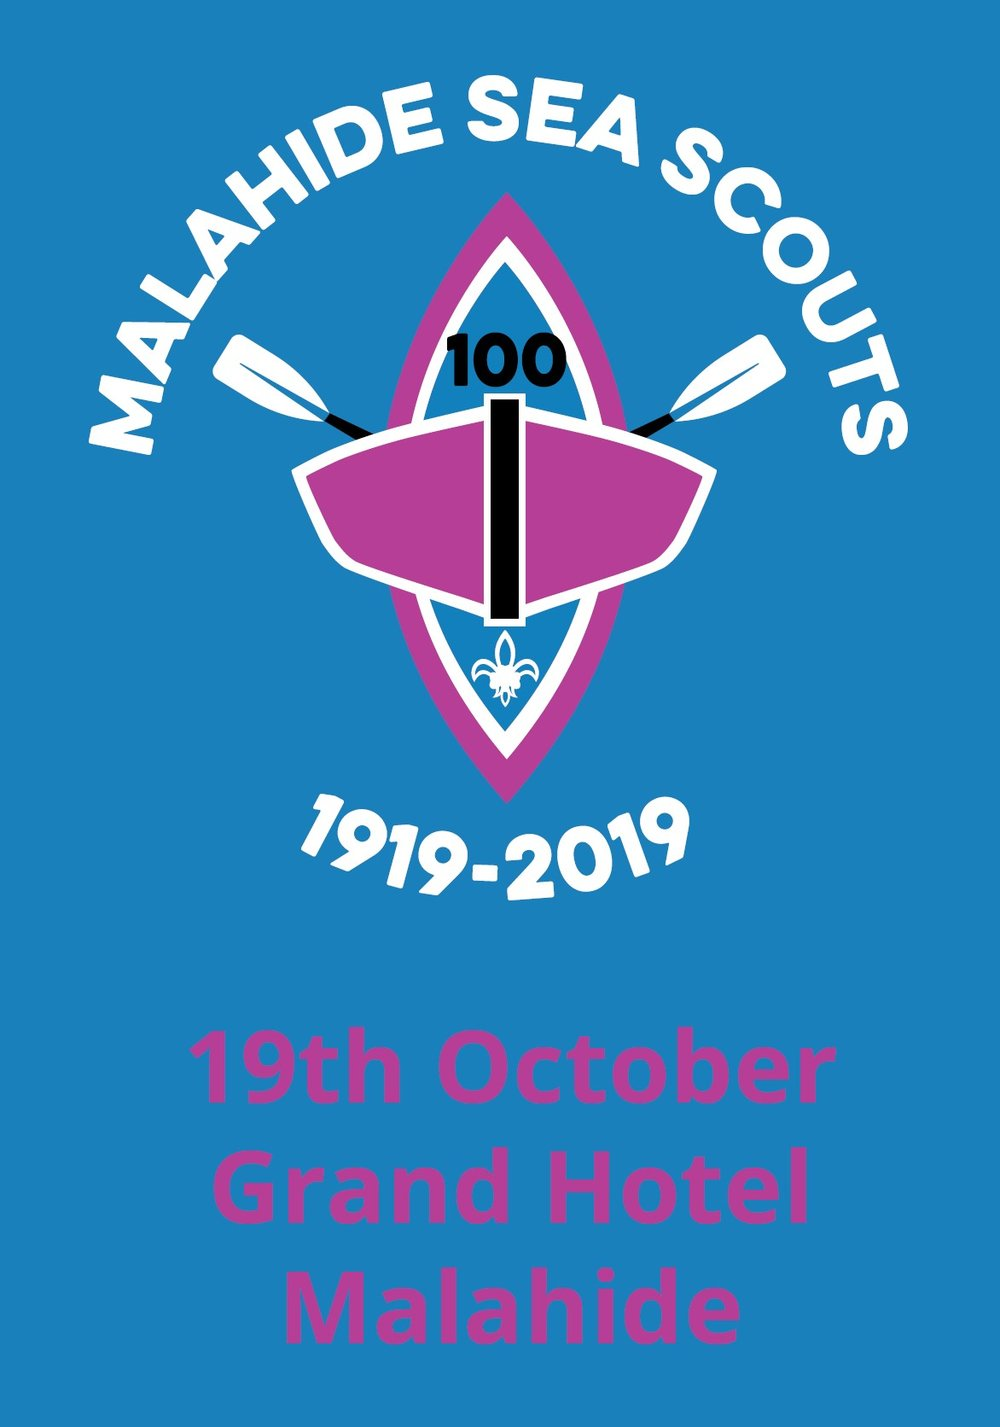 Malahide Sea Scouts Centenary Black Tie Ball -